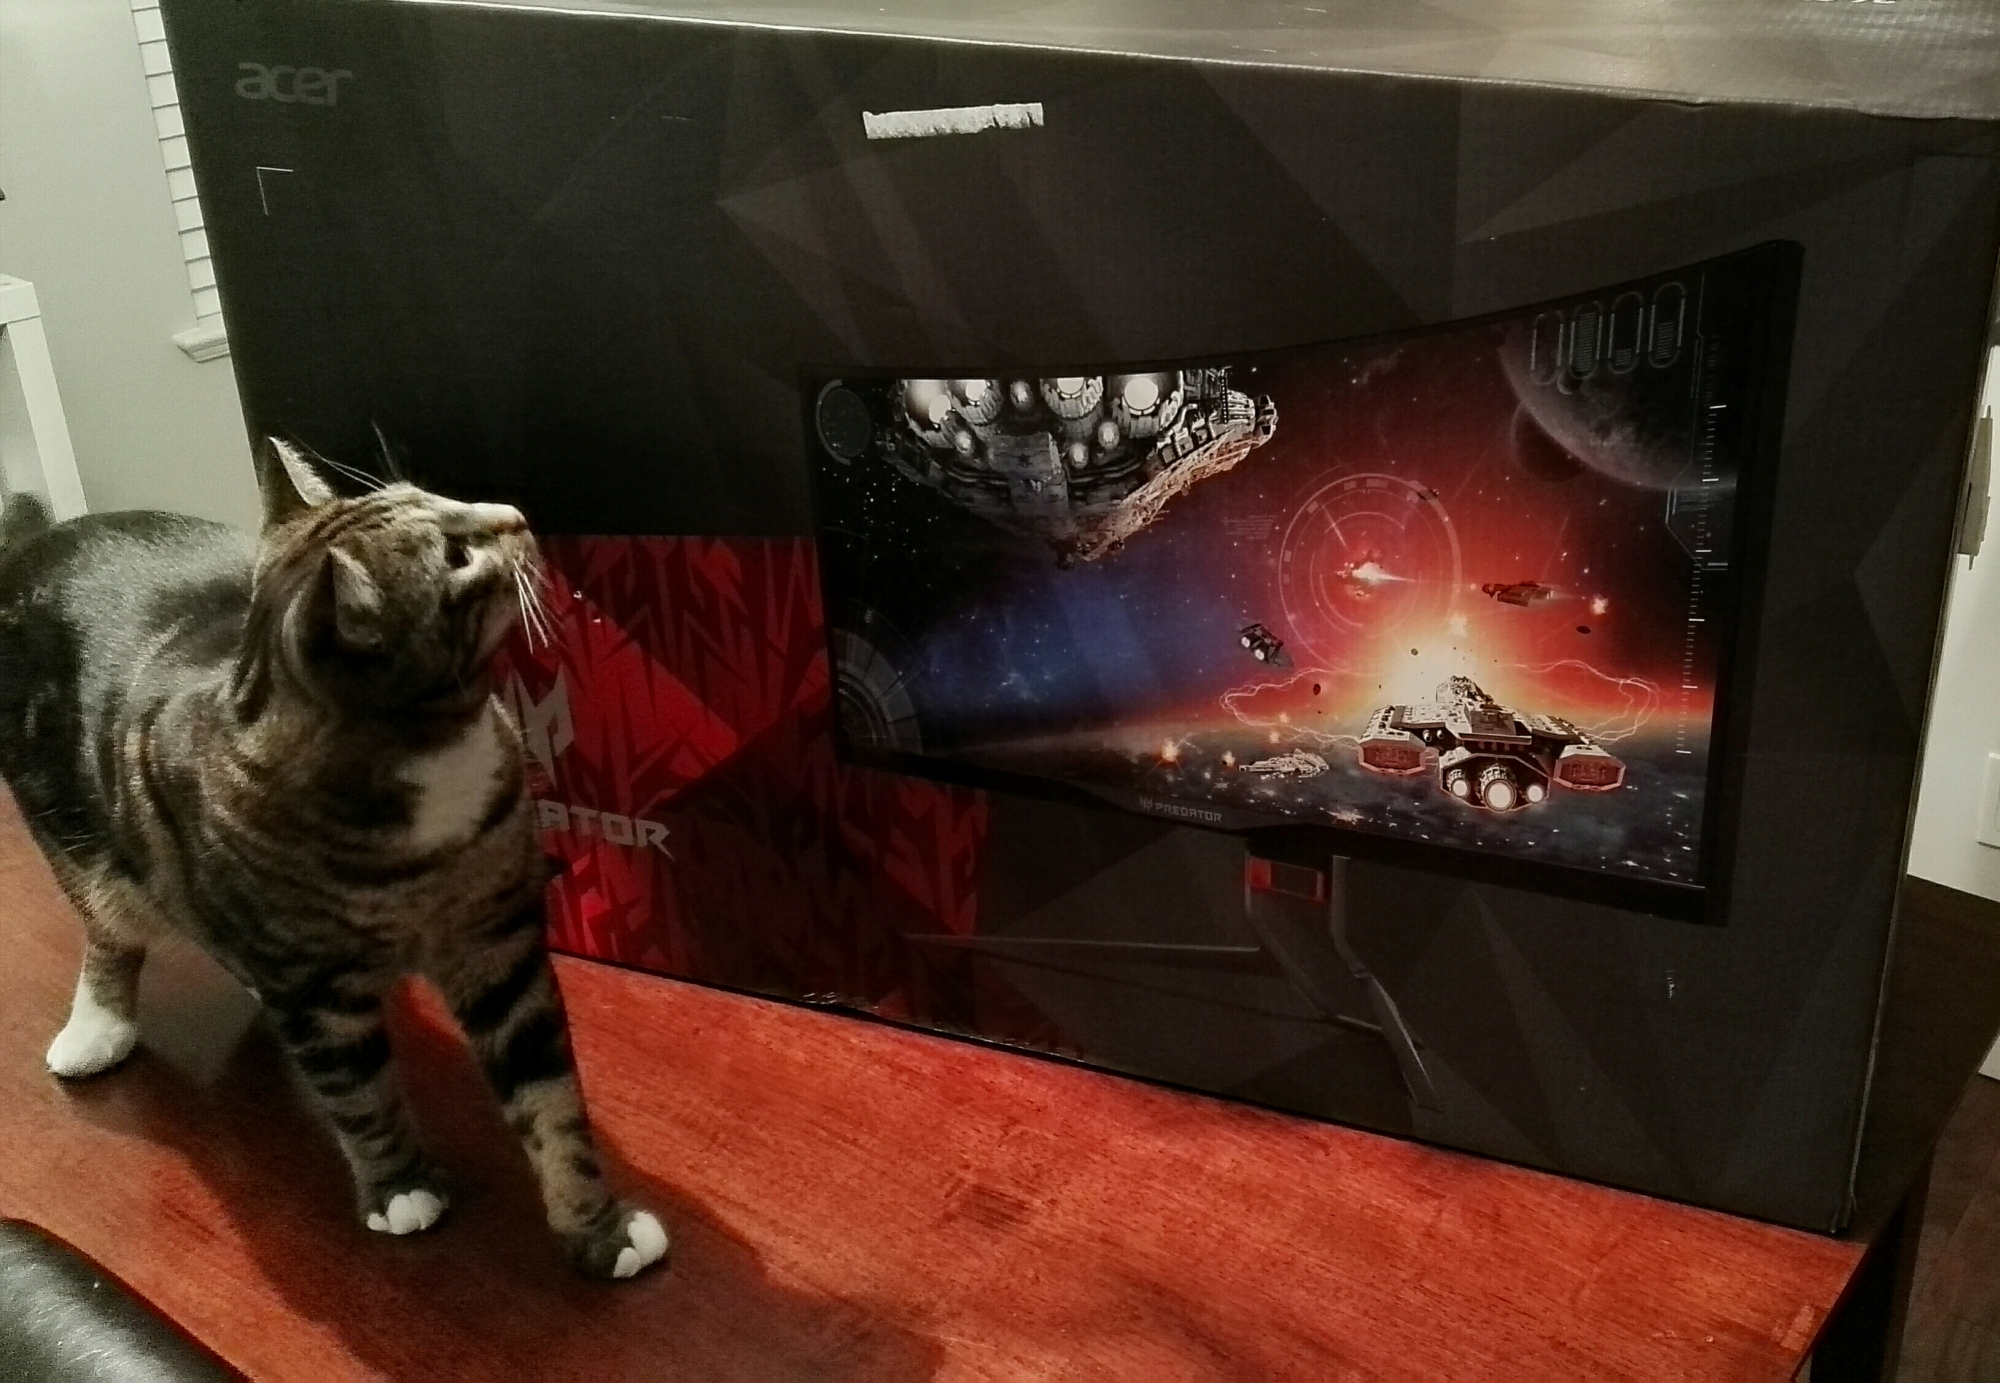 My cat Pixel loves this new monitor. Yes that is actually his name :)